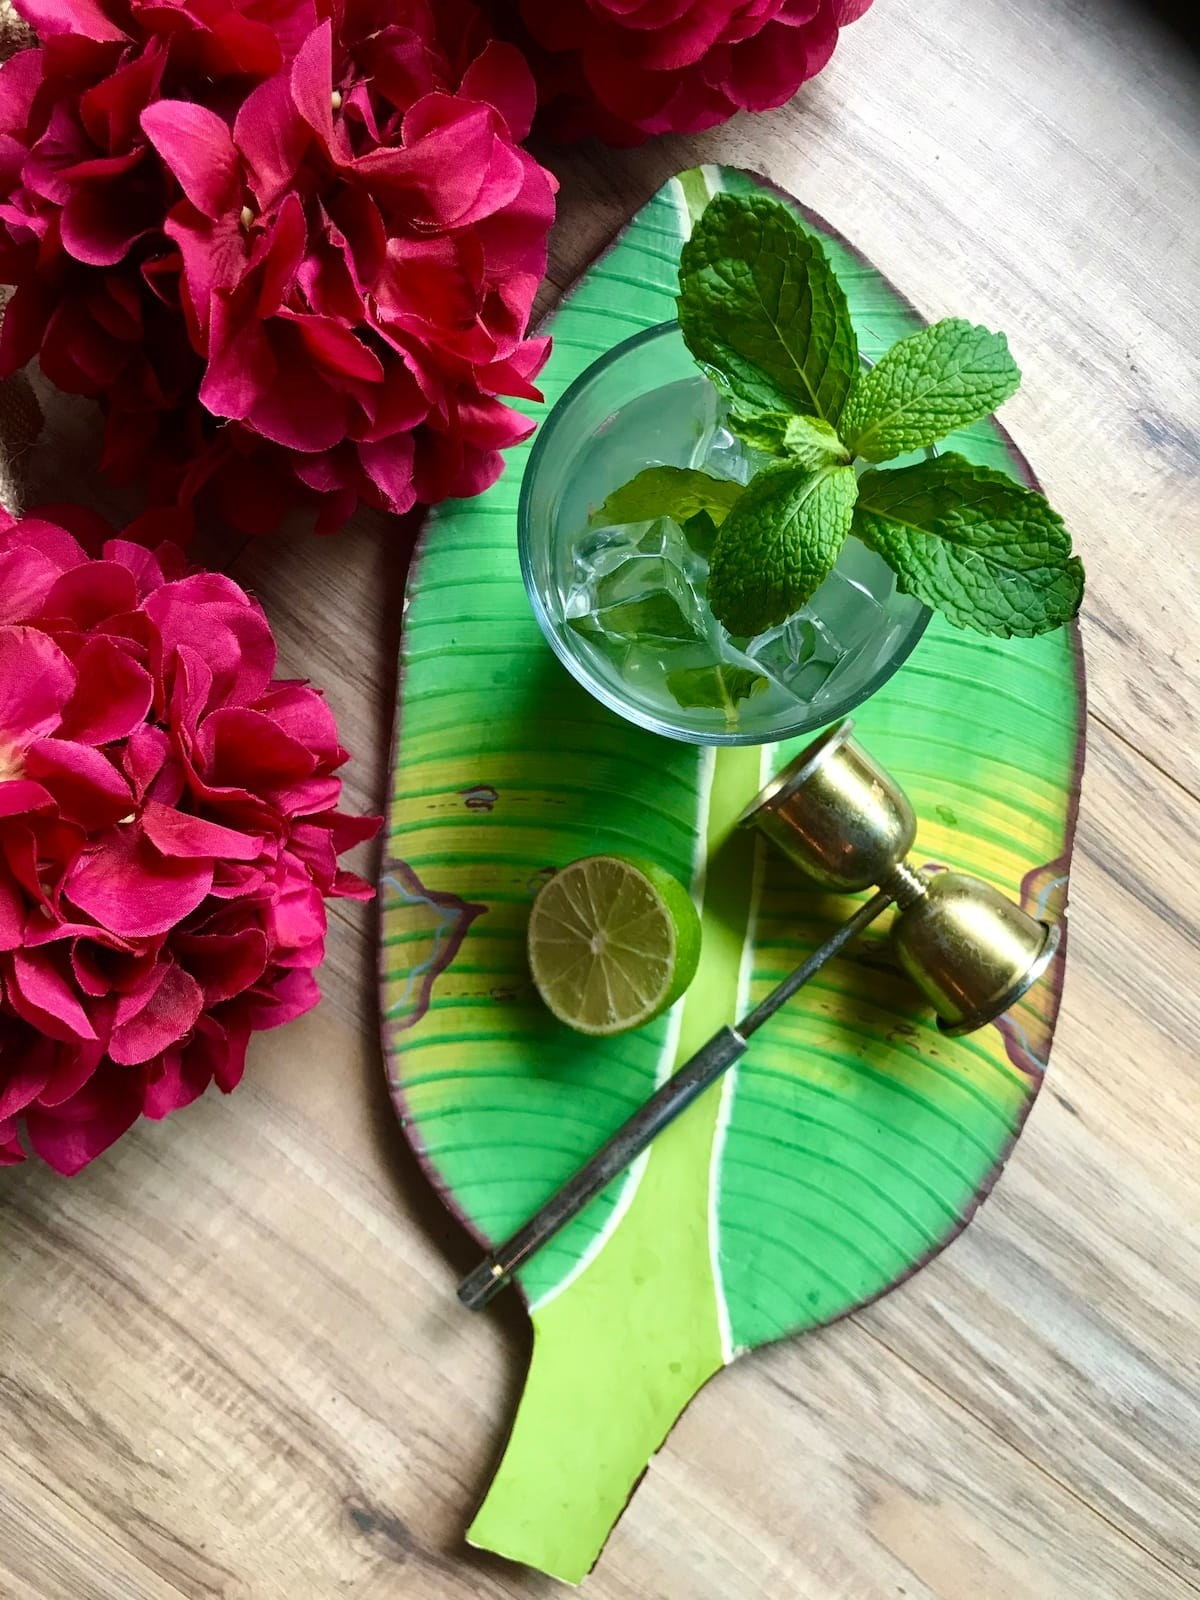 Mojito on a serving tray